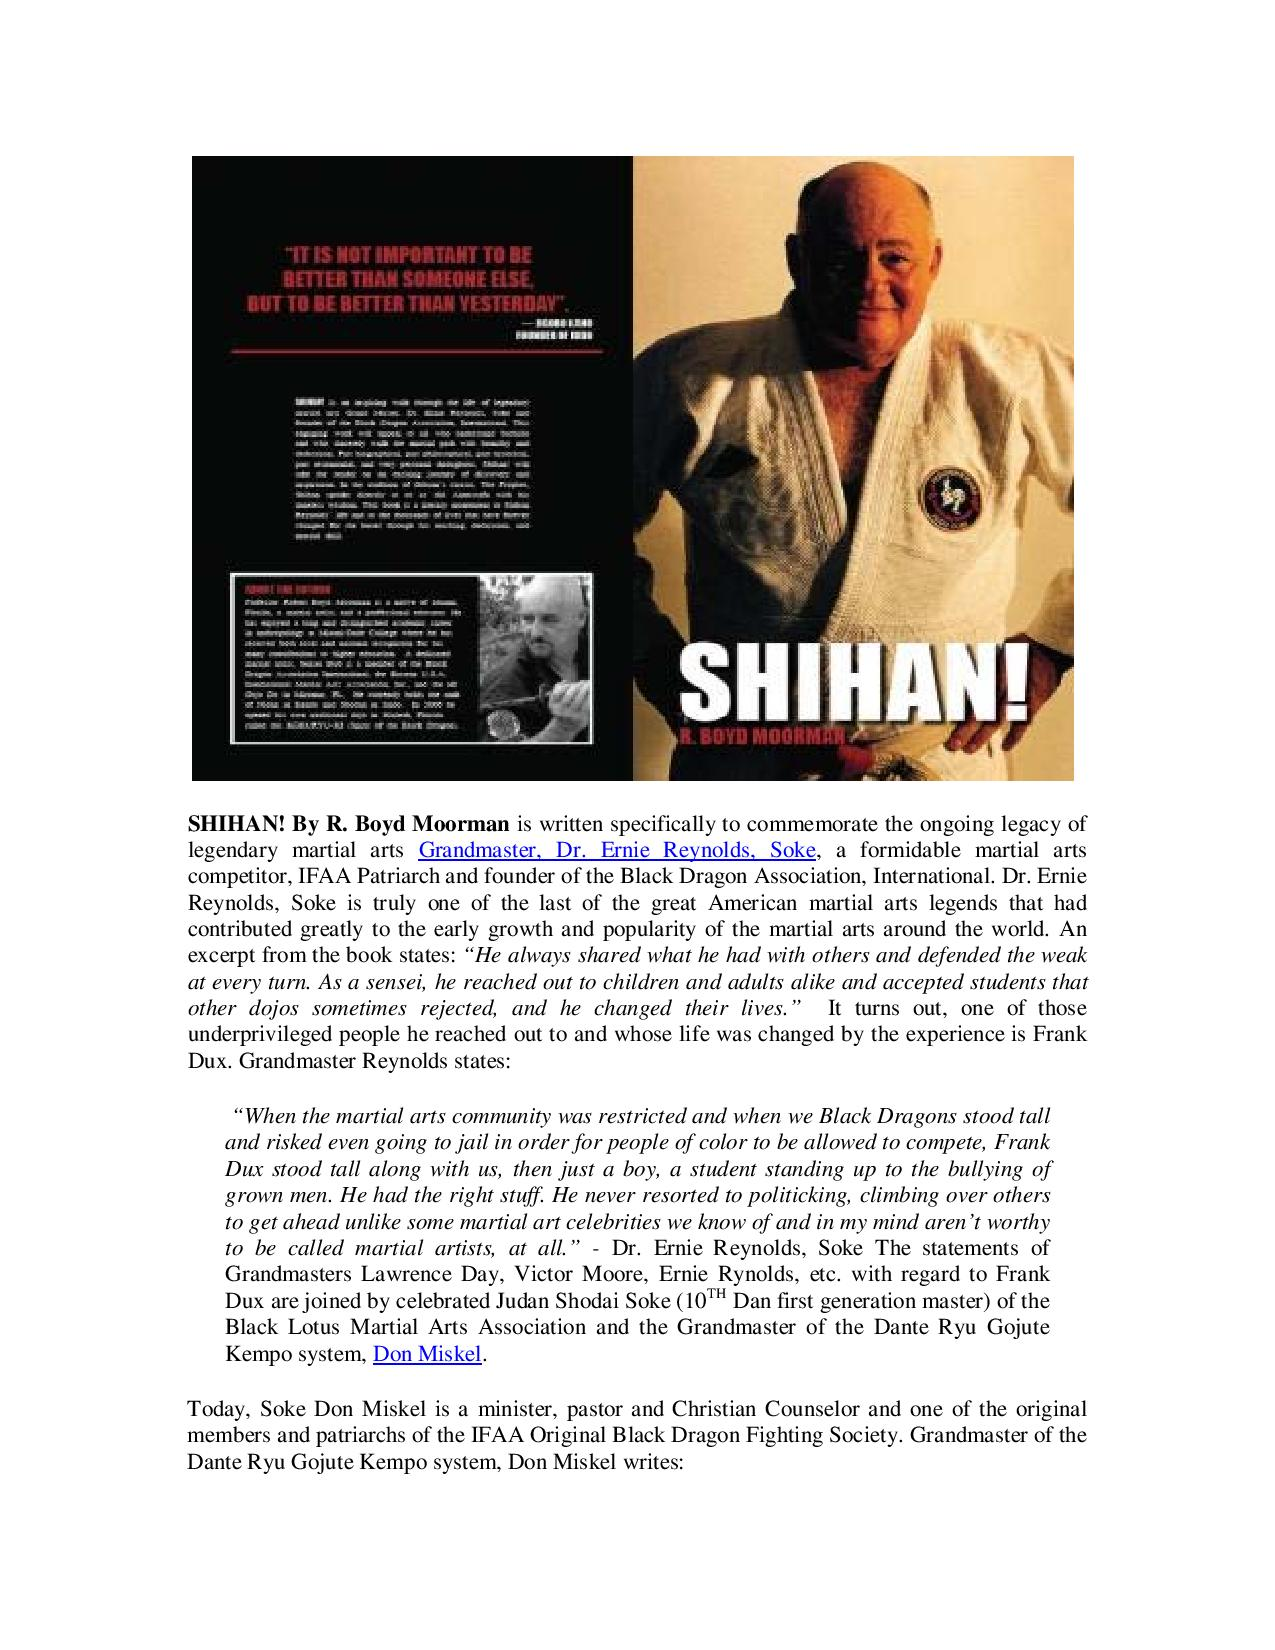 frank-dux-the-warrior-secure-page-043